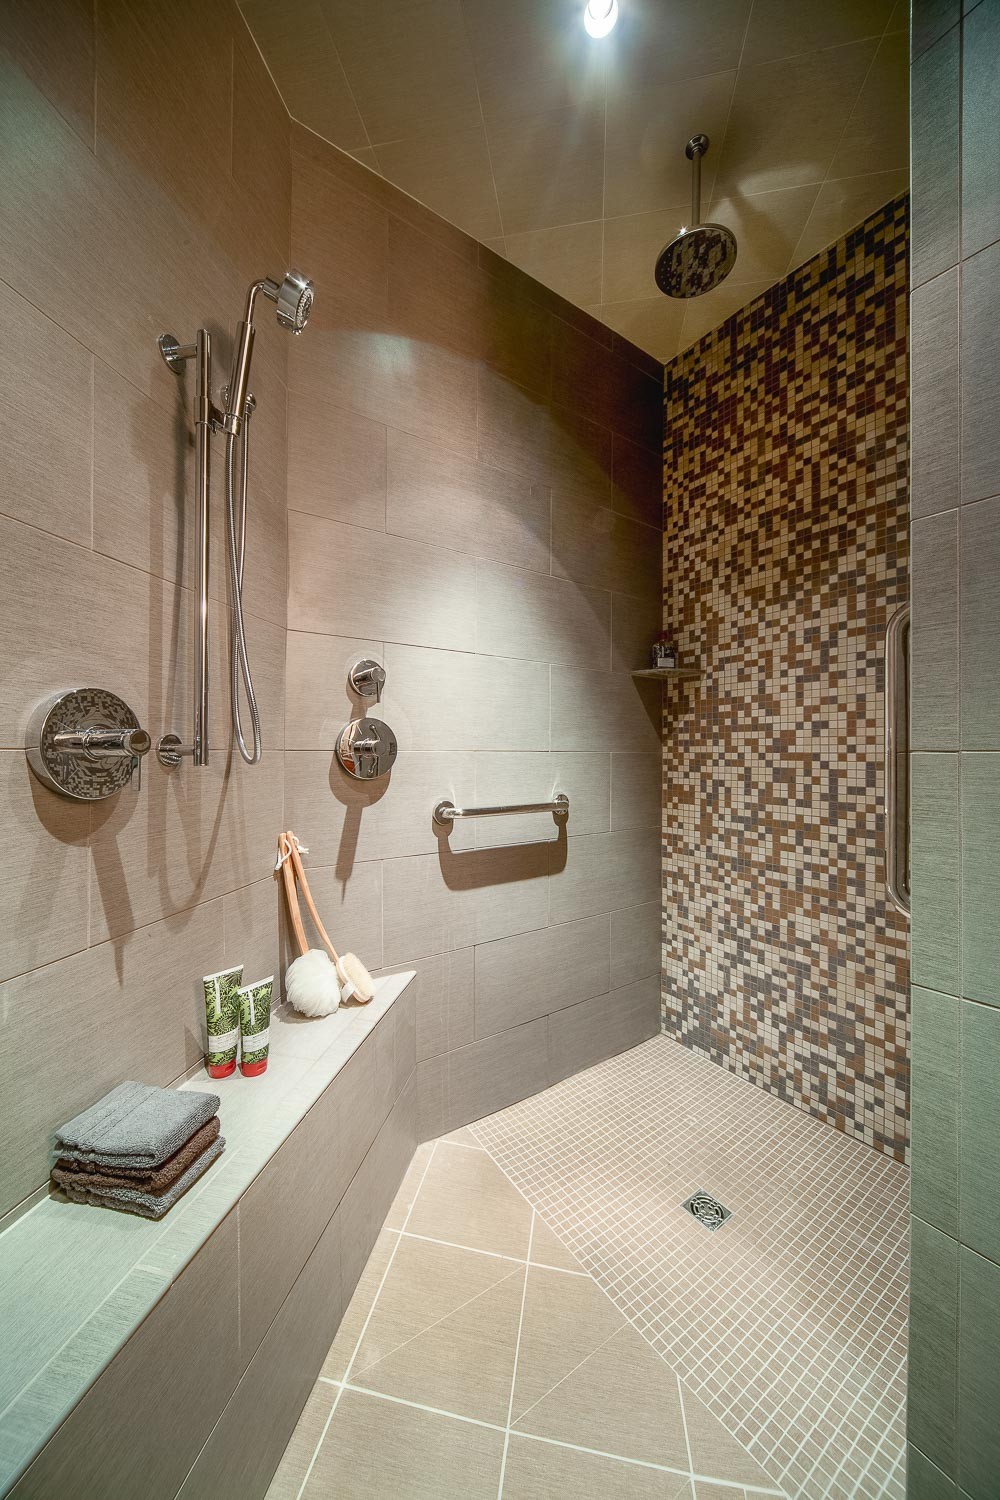 Barrier Free Shower - This curbless show in an empty-nest home was created for aging-in-place. It has no door, grab bars were installed and a shower seat integrated into the design.